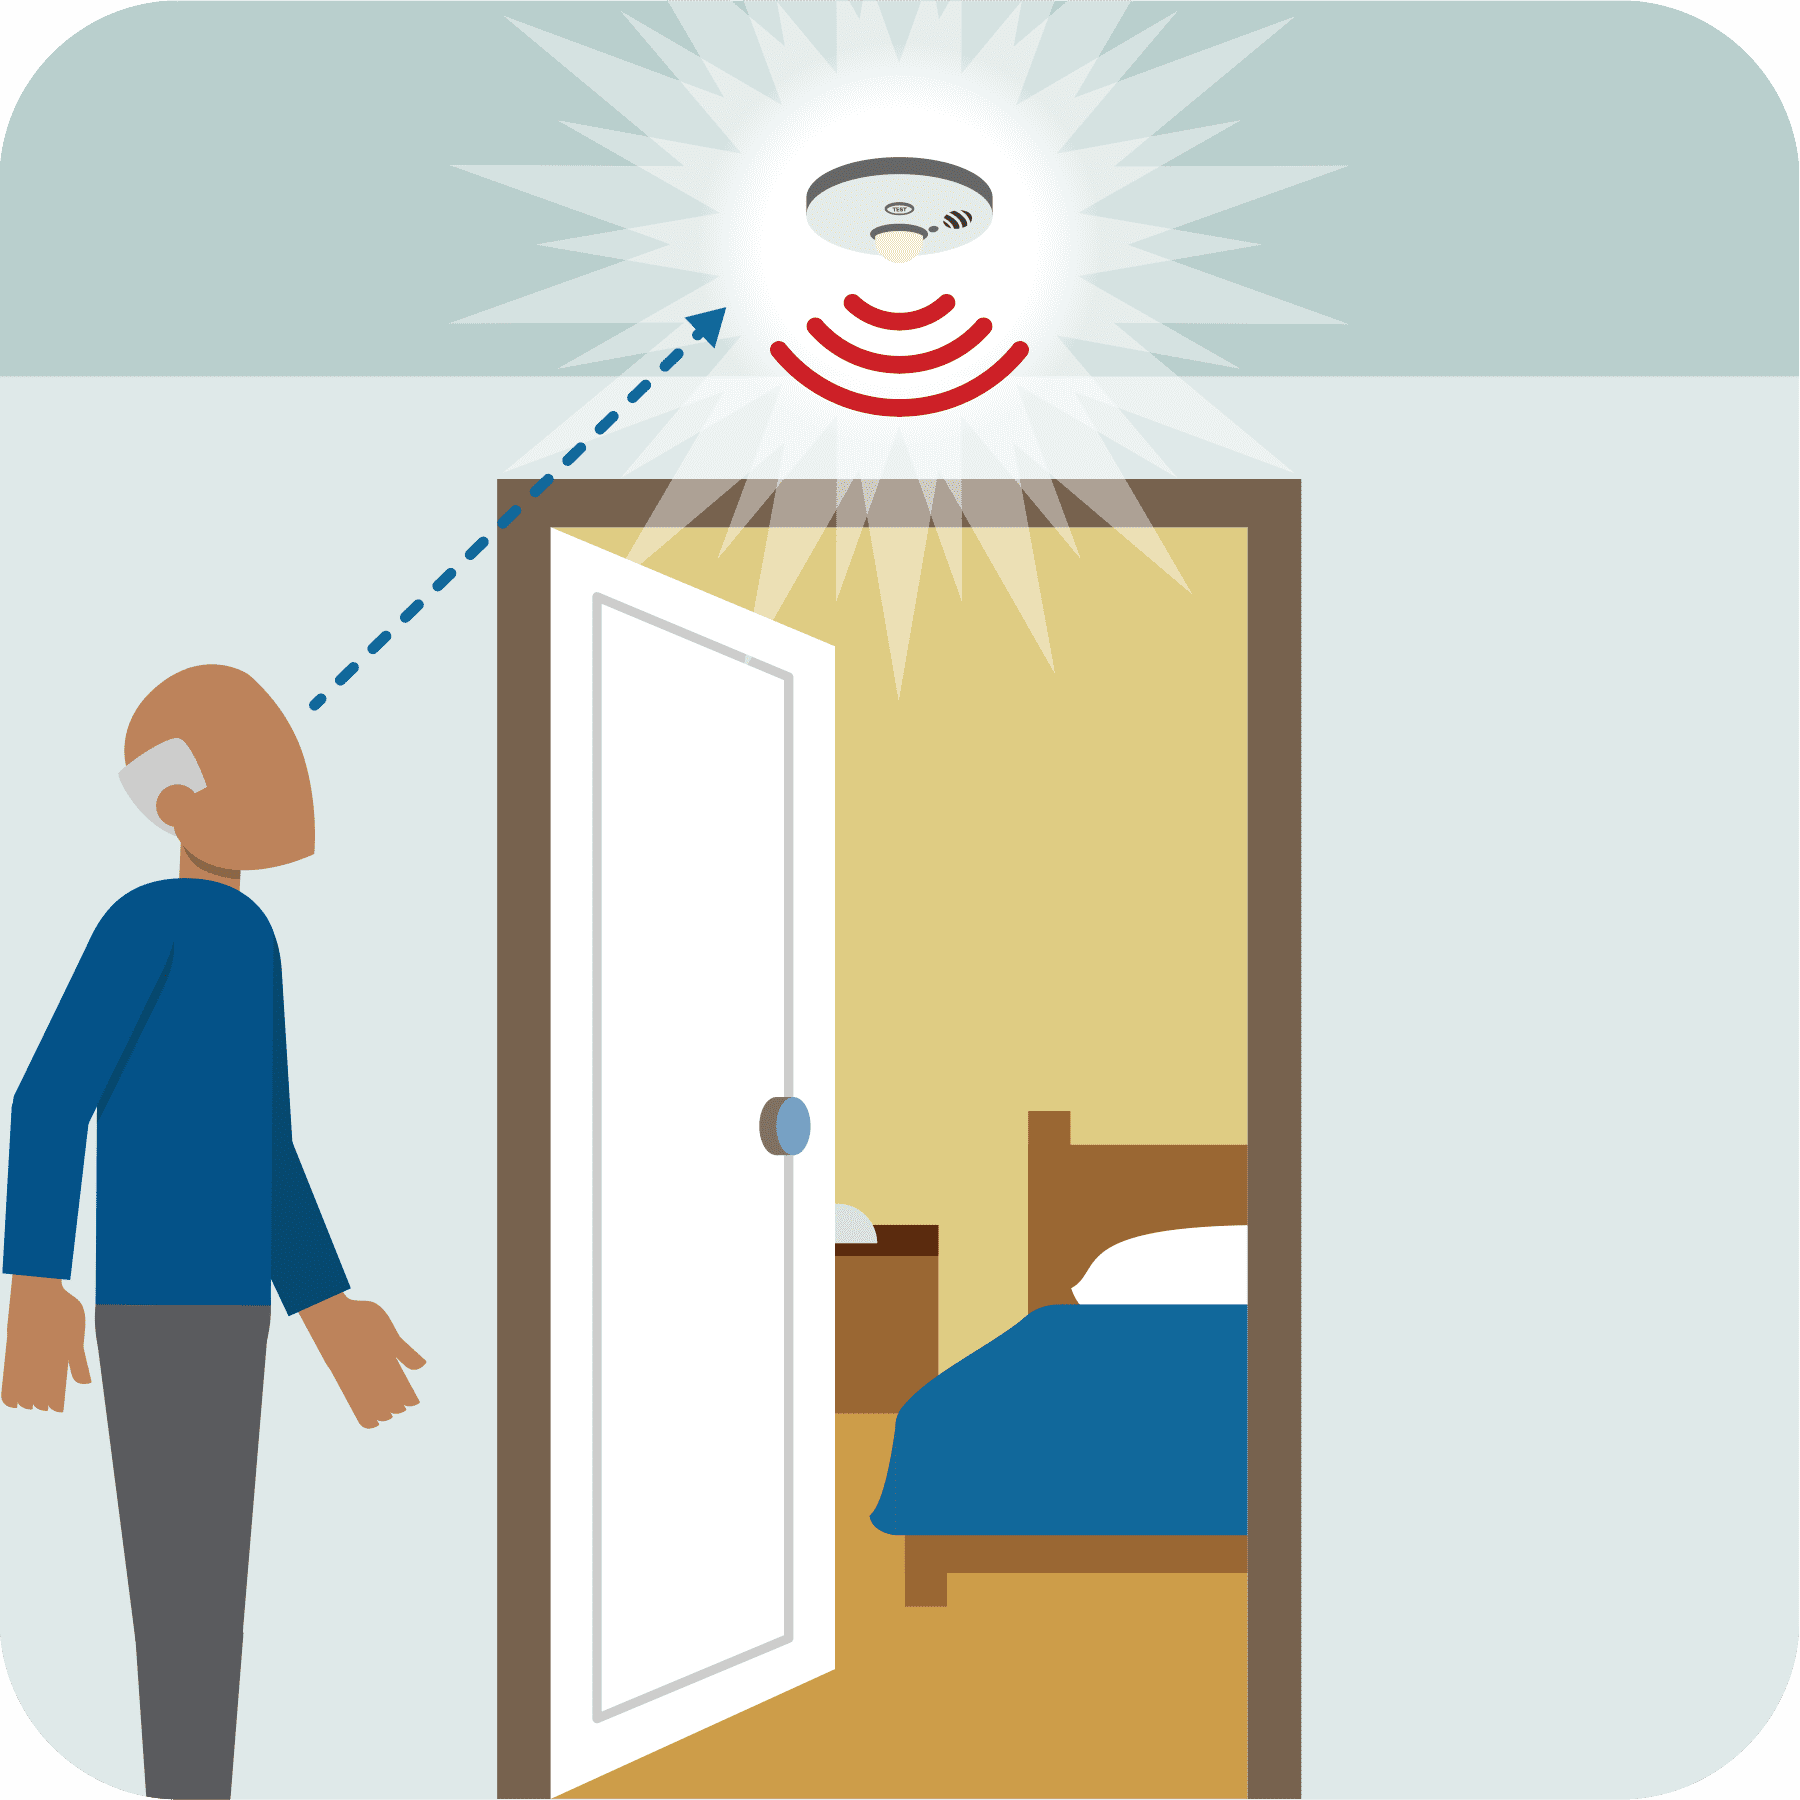 An older man sees the activated strobe light smoke alarm.